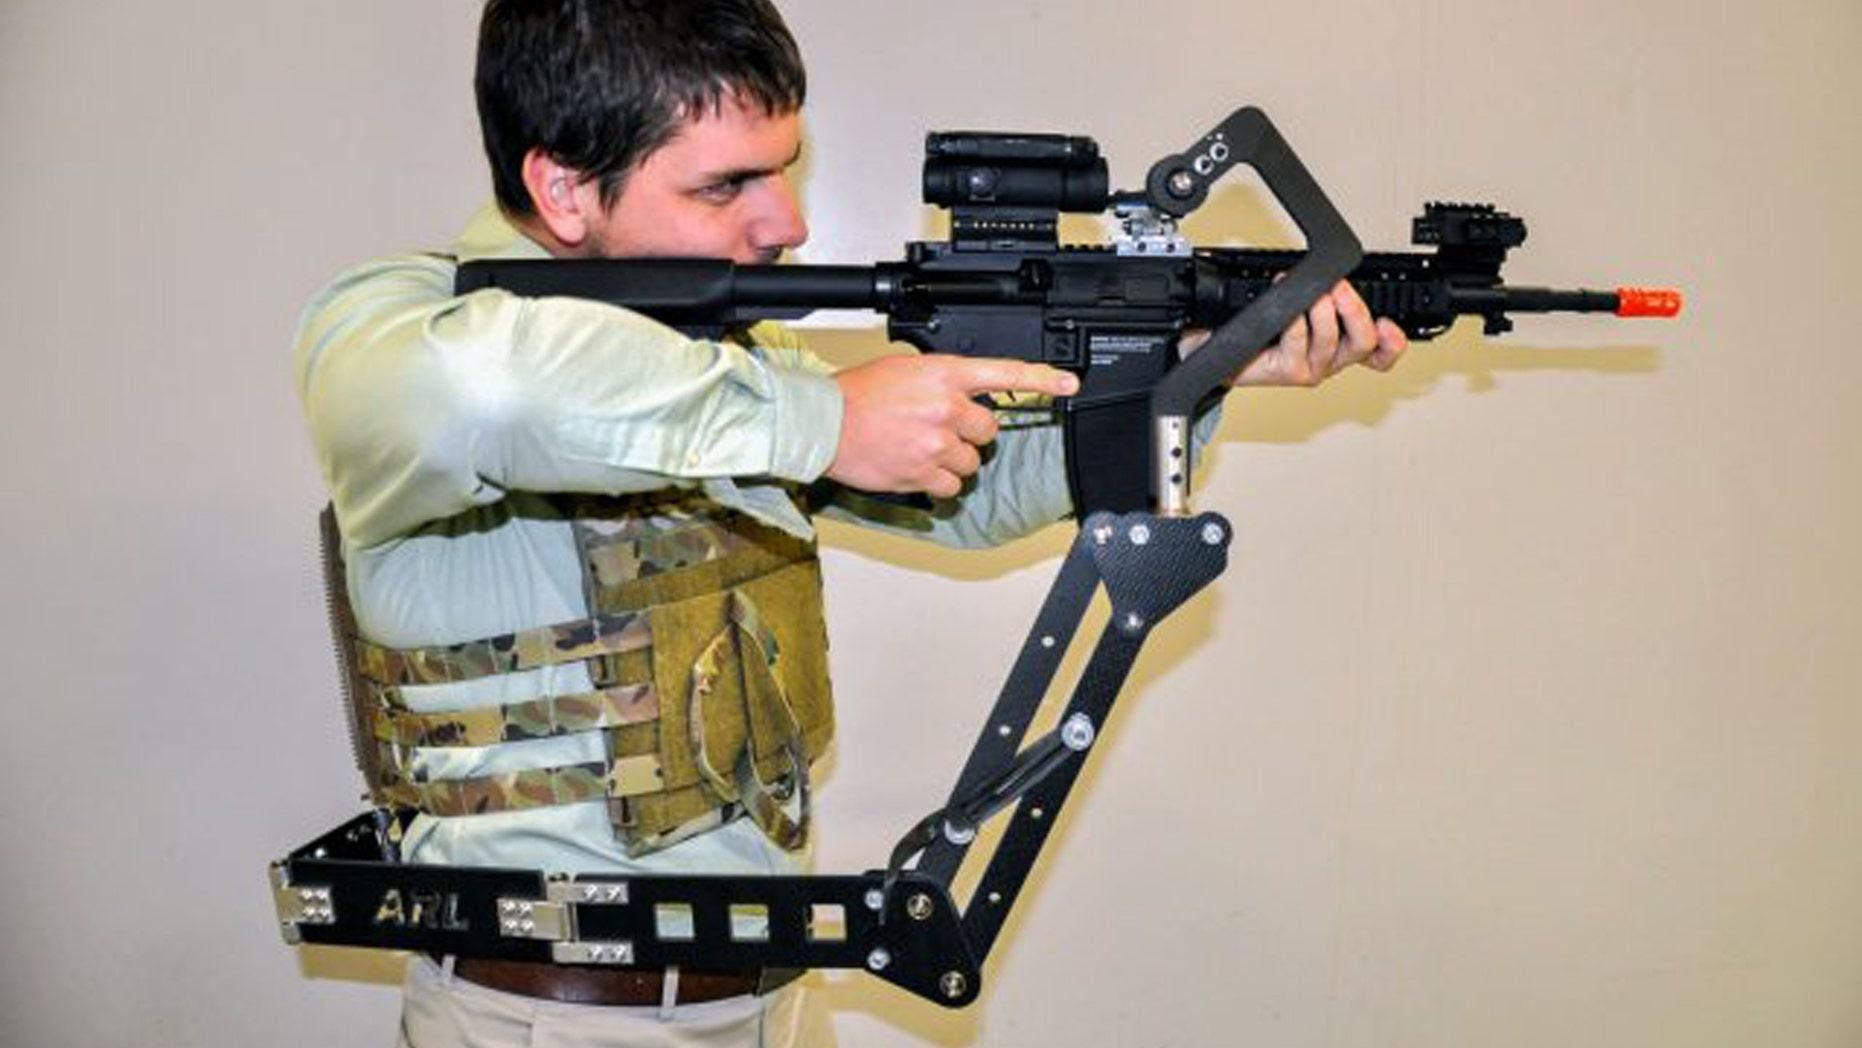 """The Army Research Laboratory is developing a """"third arm"""" passive mechanical appendage that could lessen Soldier burden and increase lethality. Weighing less than 4 pounds, the device attaches to a Soldier's protective vest and holds their weapon, putting less weight on their arms and freeing up their hands to do other tasks. (Photo Credit: U.S. Army)"""